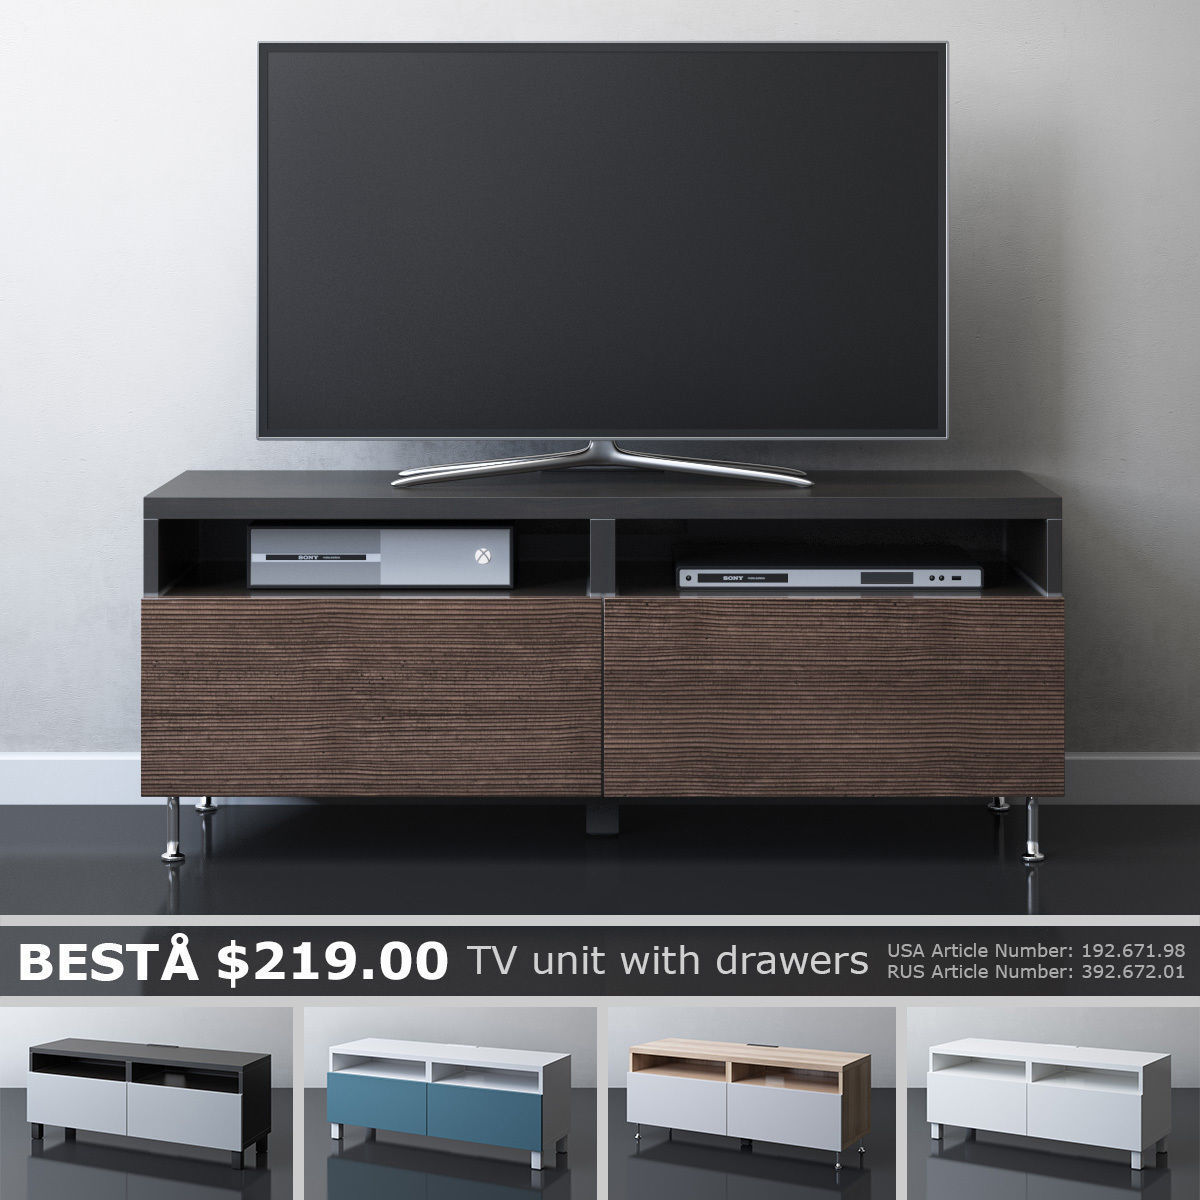 Besta Tv Ikea Besta Tv Unit With Drawers 3d Model